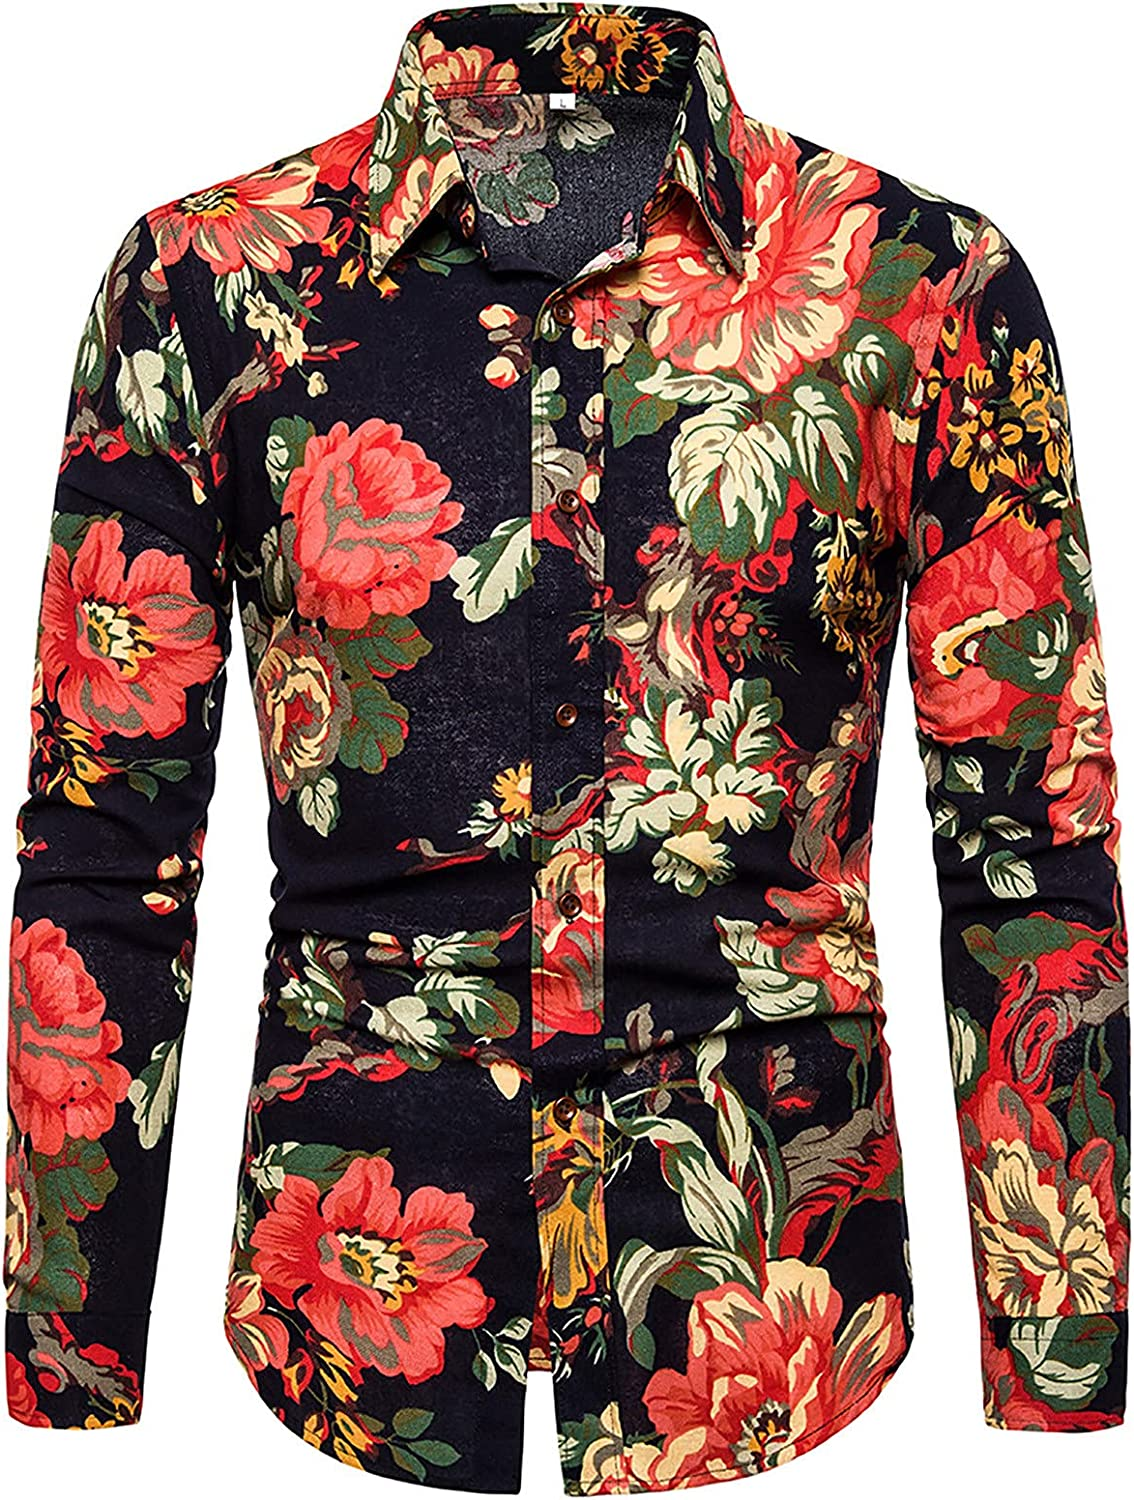 Mens Dress Shirt Floral Rose Printed Long Sleeve Vintage Dress Shirts Prom Wedding Party Casual Holiday